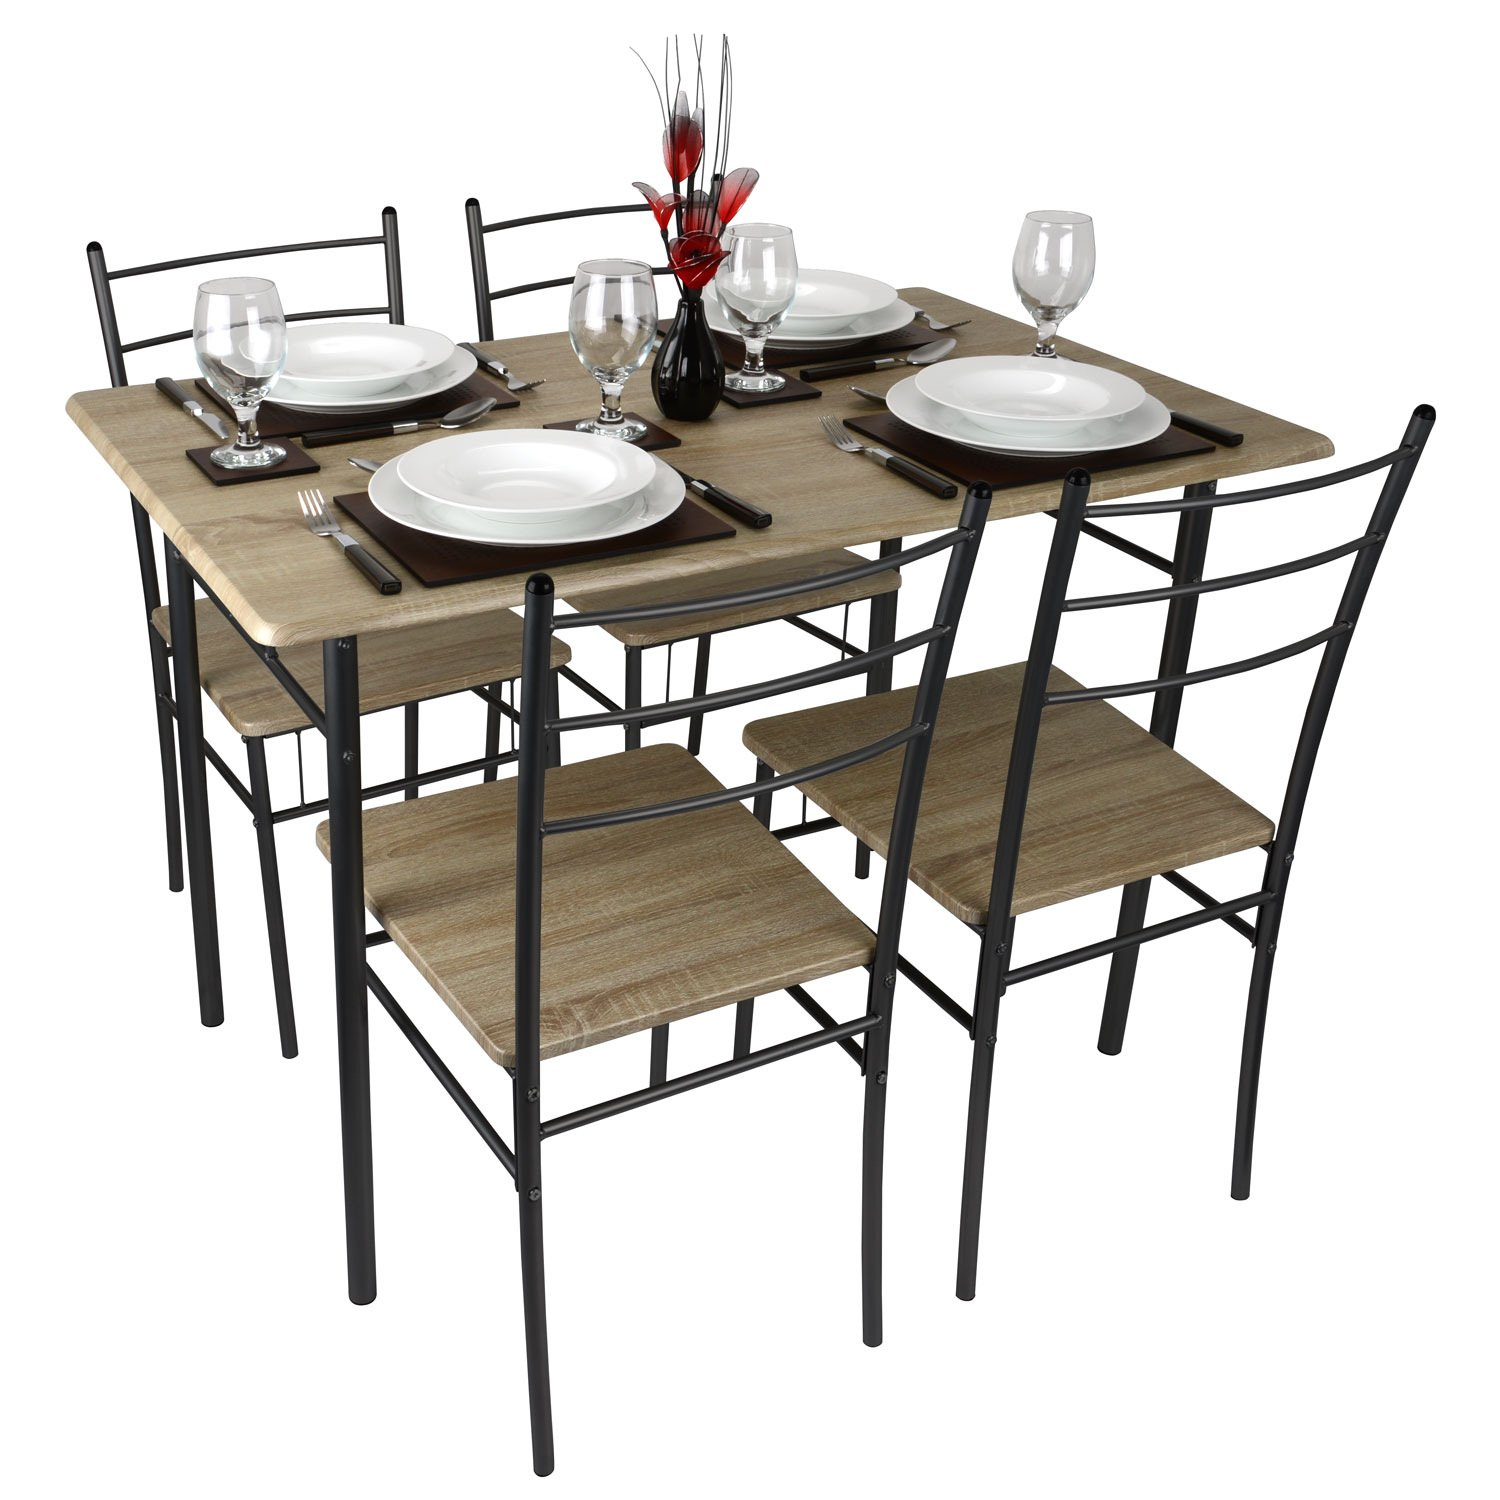 Cecilia 5 Piece Table & Chair Set Amazon Kitchen & Home